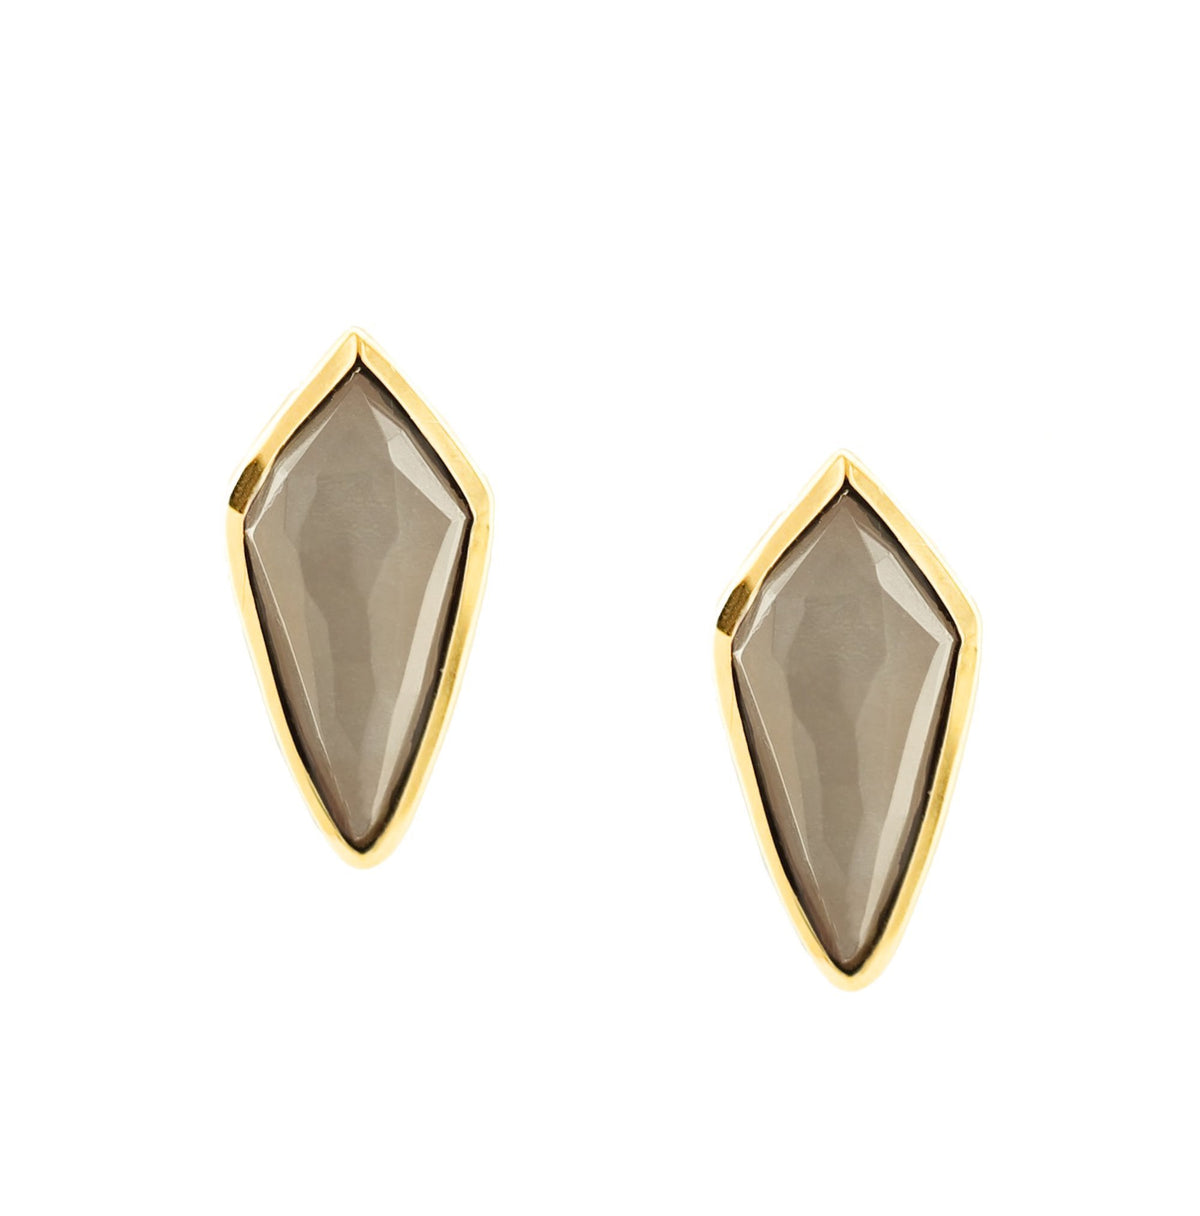 MIDI BRAVE STUD EARRINGS - CHAI MOONSTONE & GOLD - LIMITED EDITION - SO PRETTY CARA COTTER